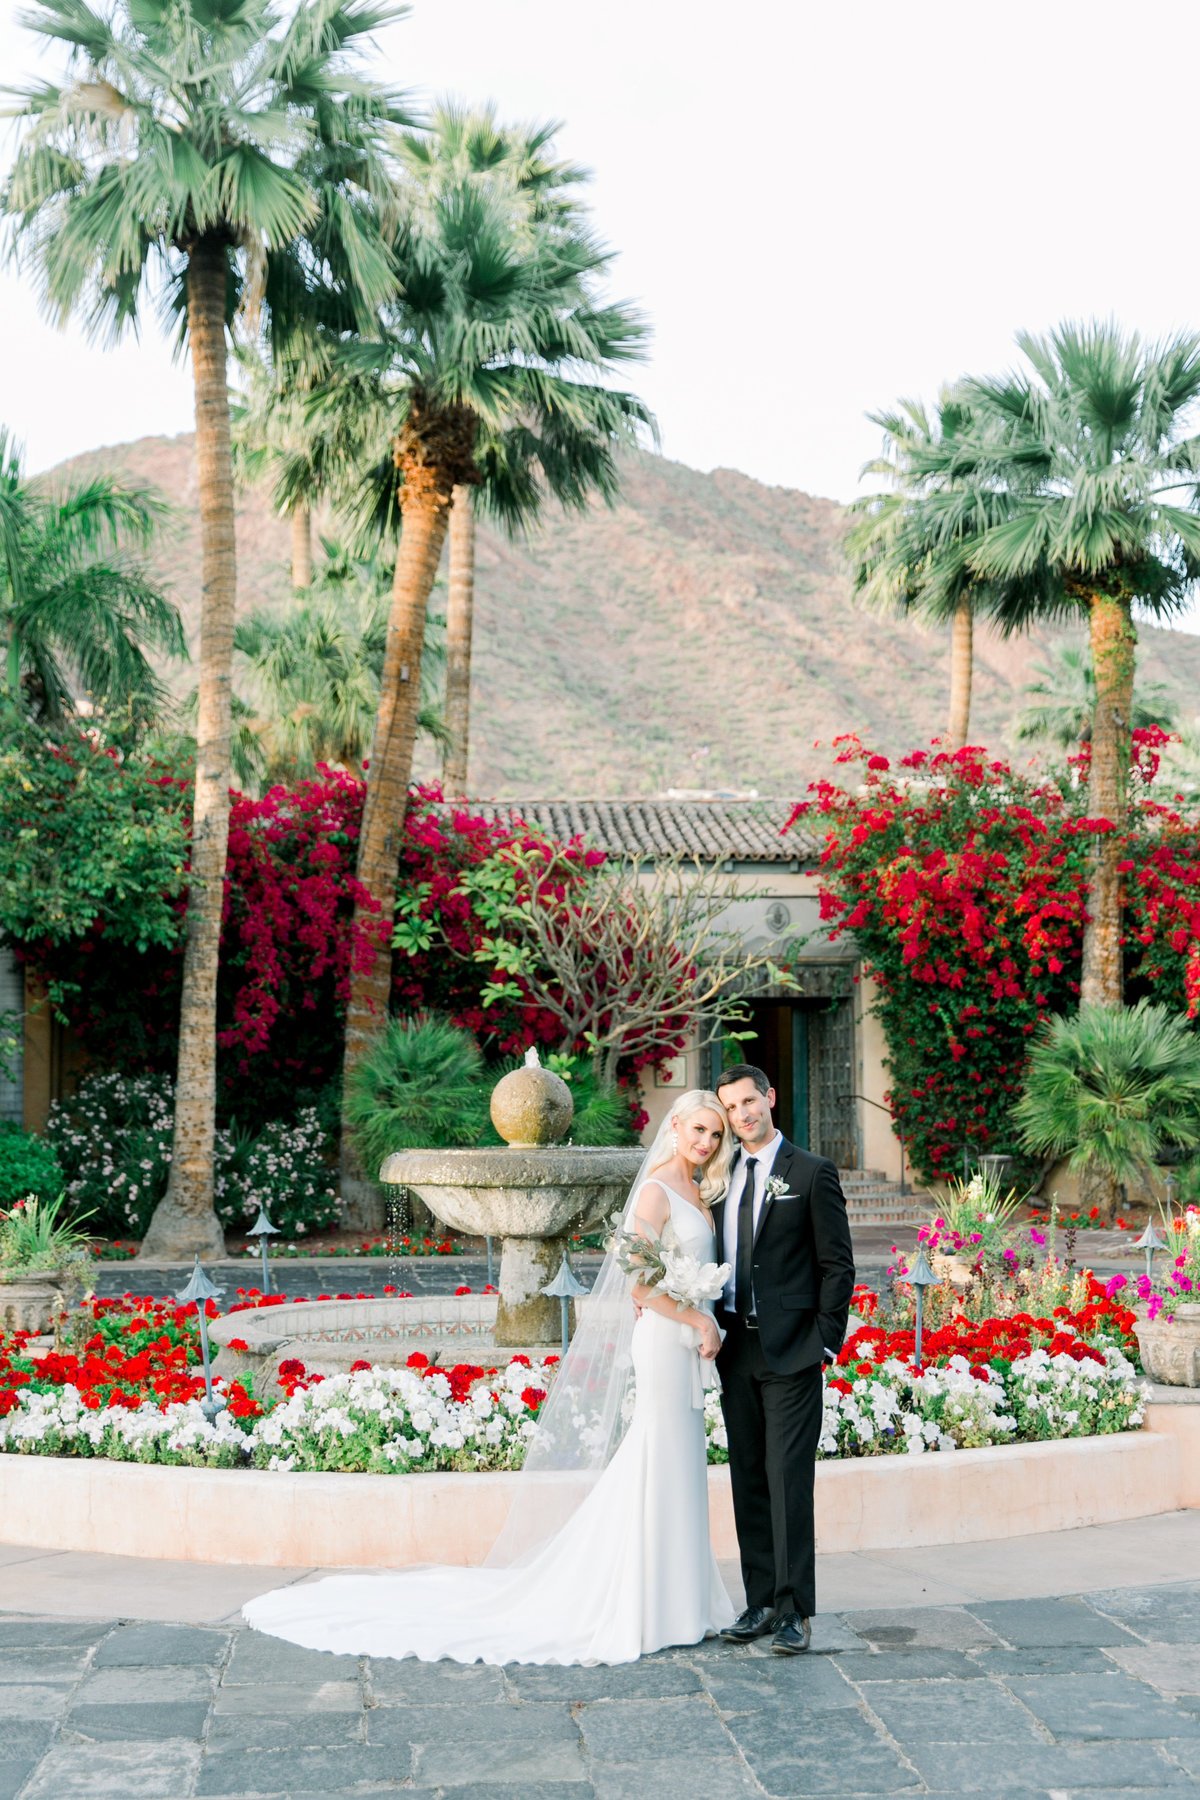 Karlie Colleen Photography - The Royal Palms - Arizona Wedding - Alex & Alex-570